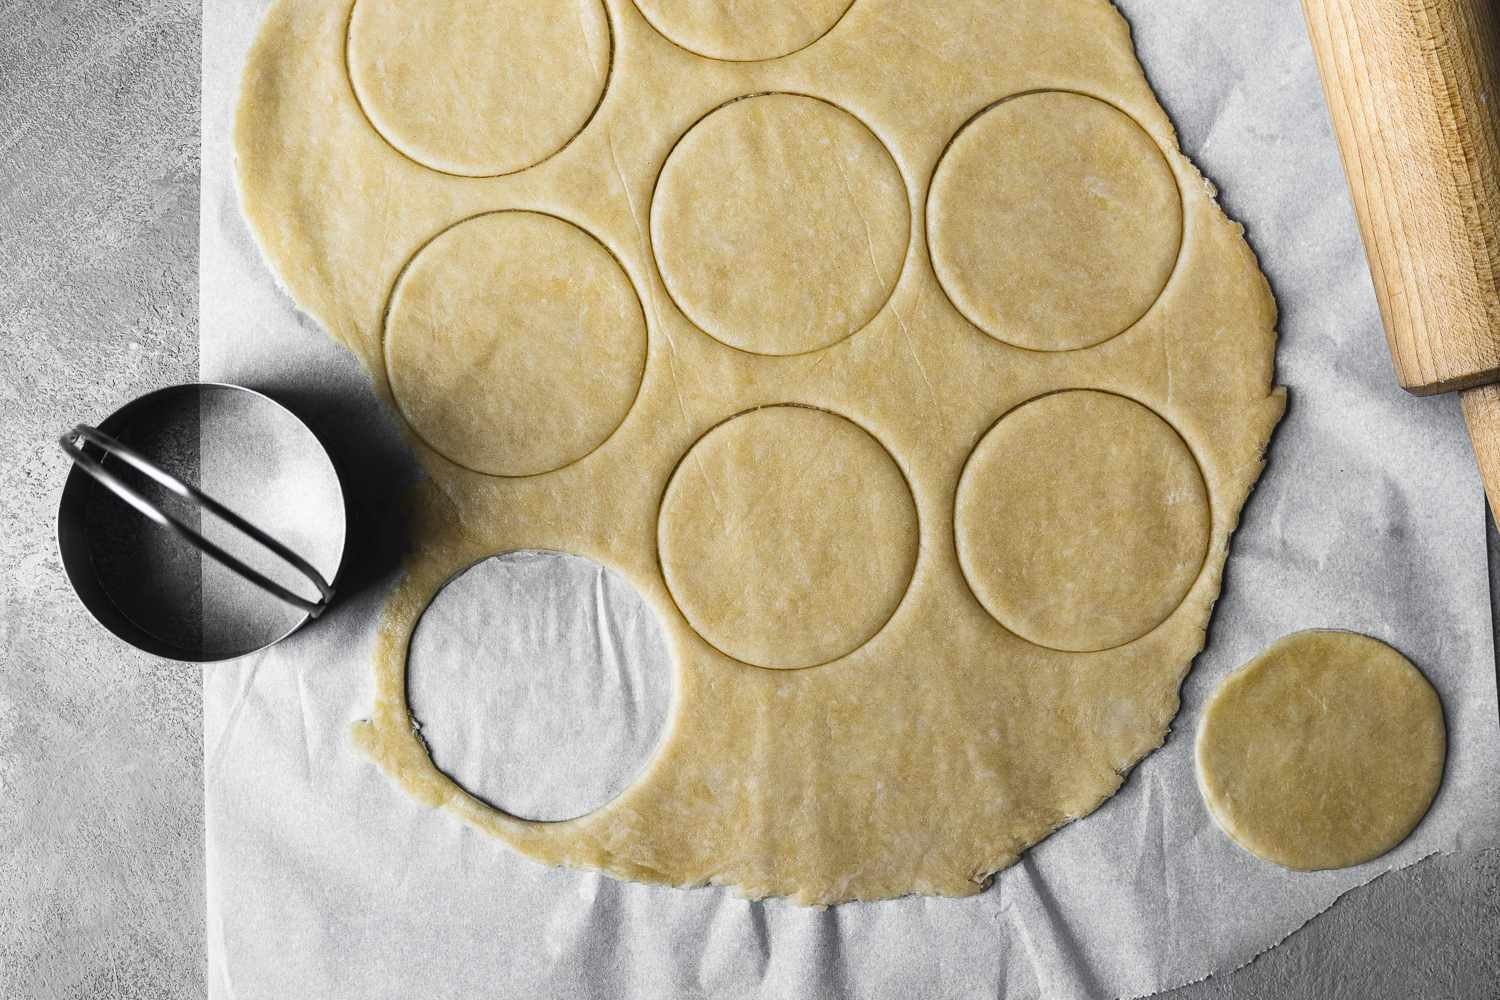 Rolled dough cut with a circle cutter